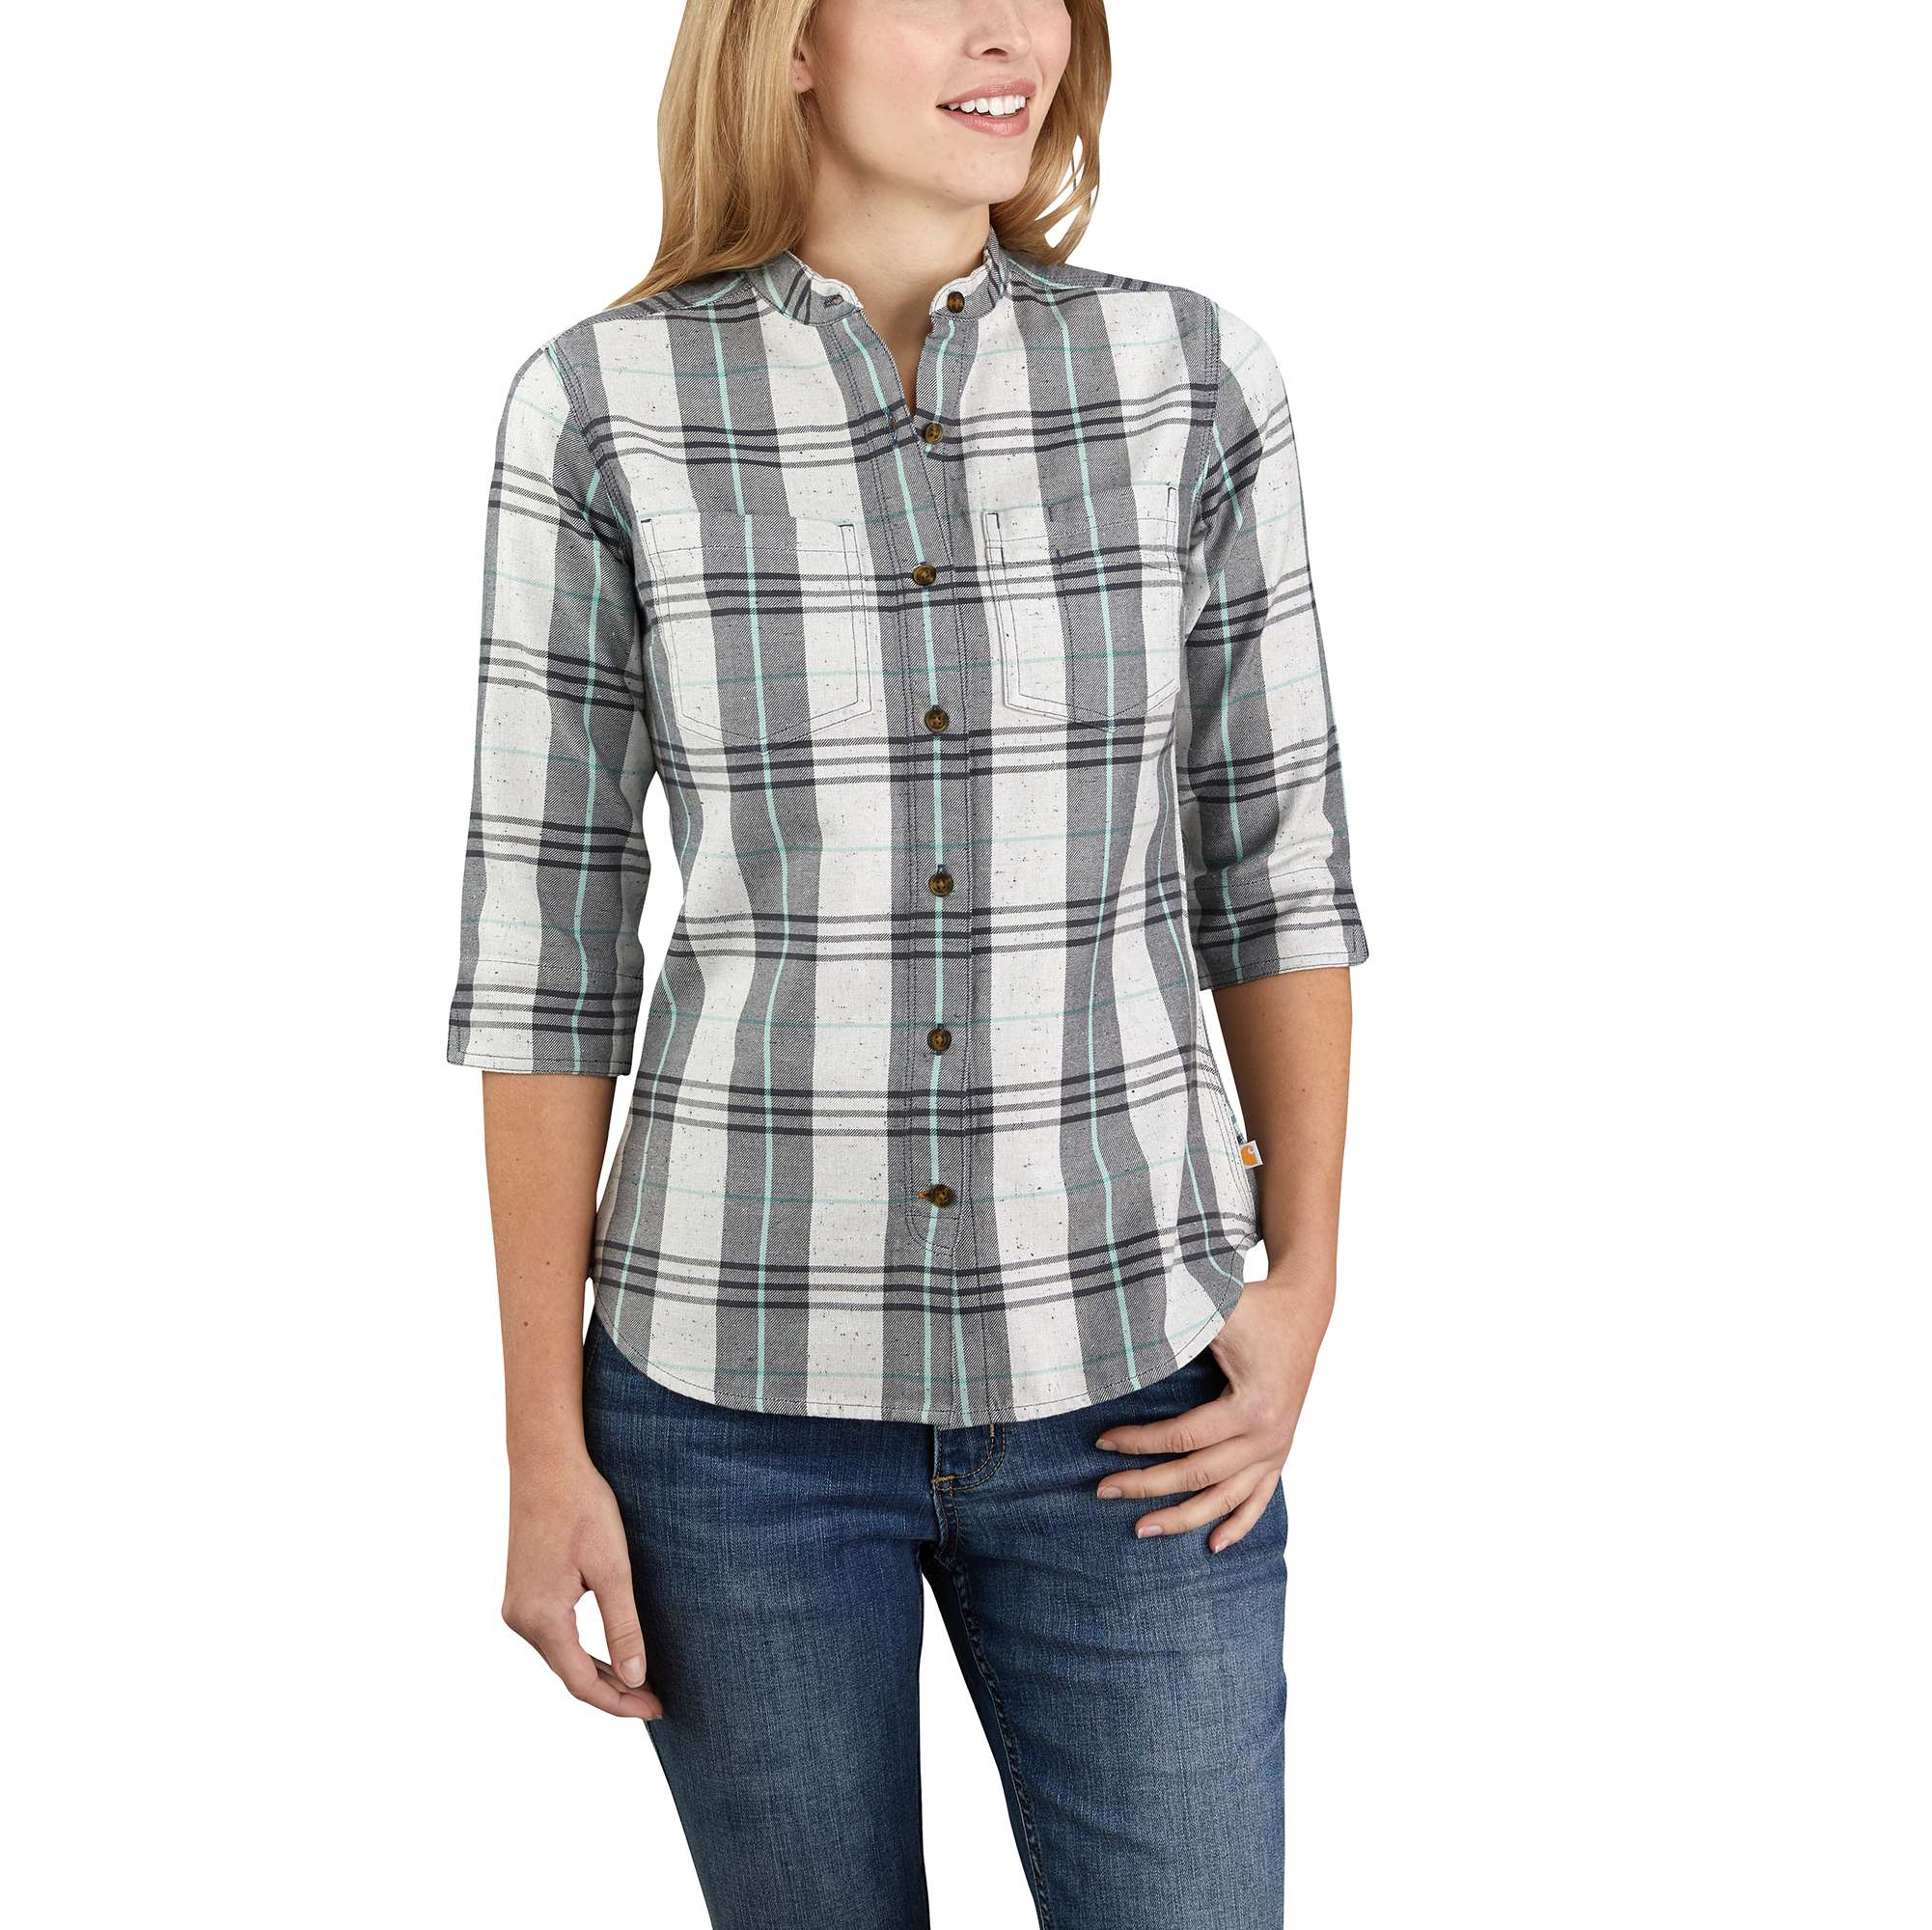 Relaxed Fit Midweight Plaid Shirt